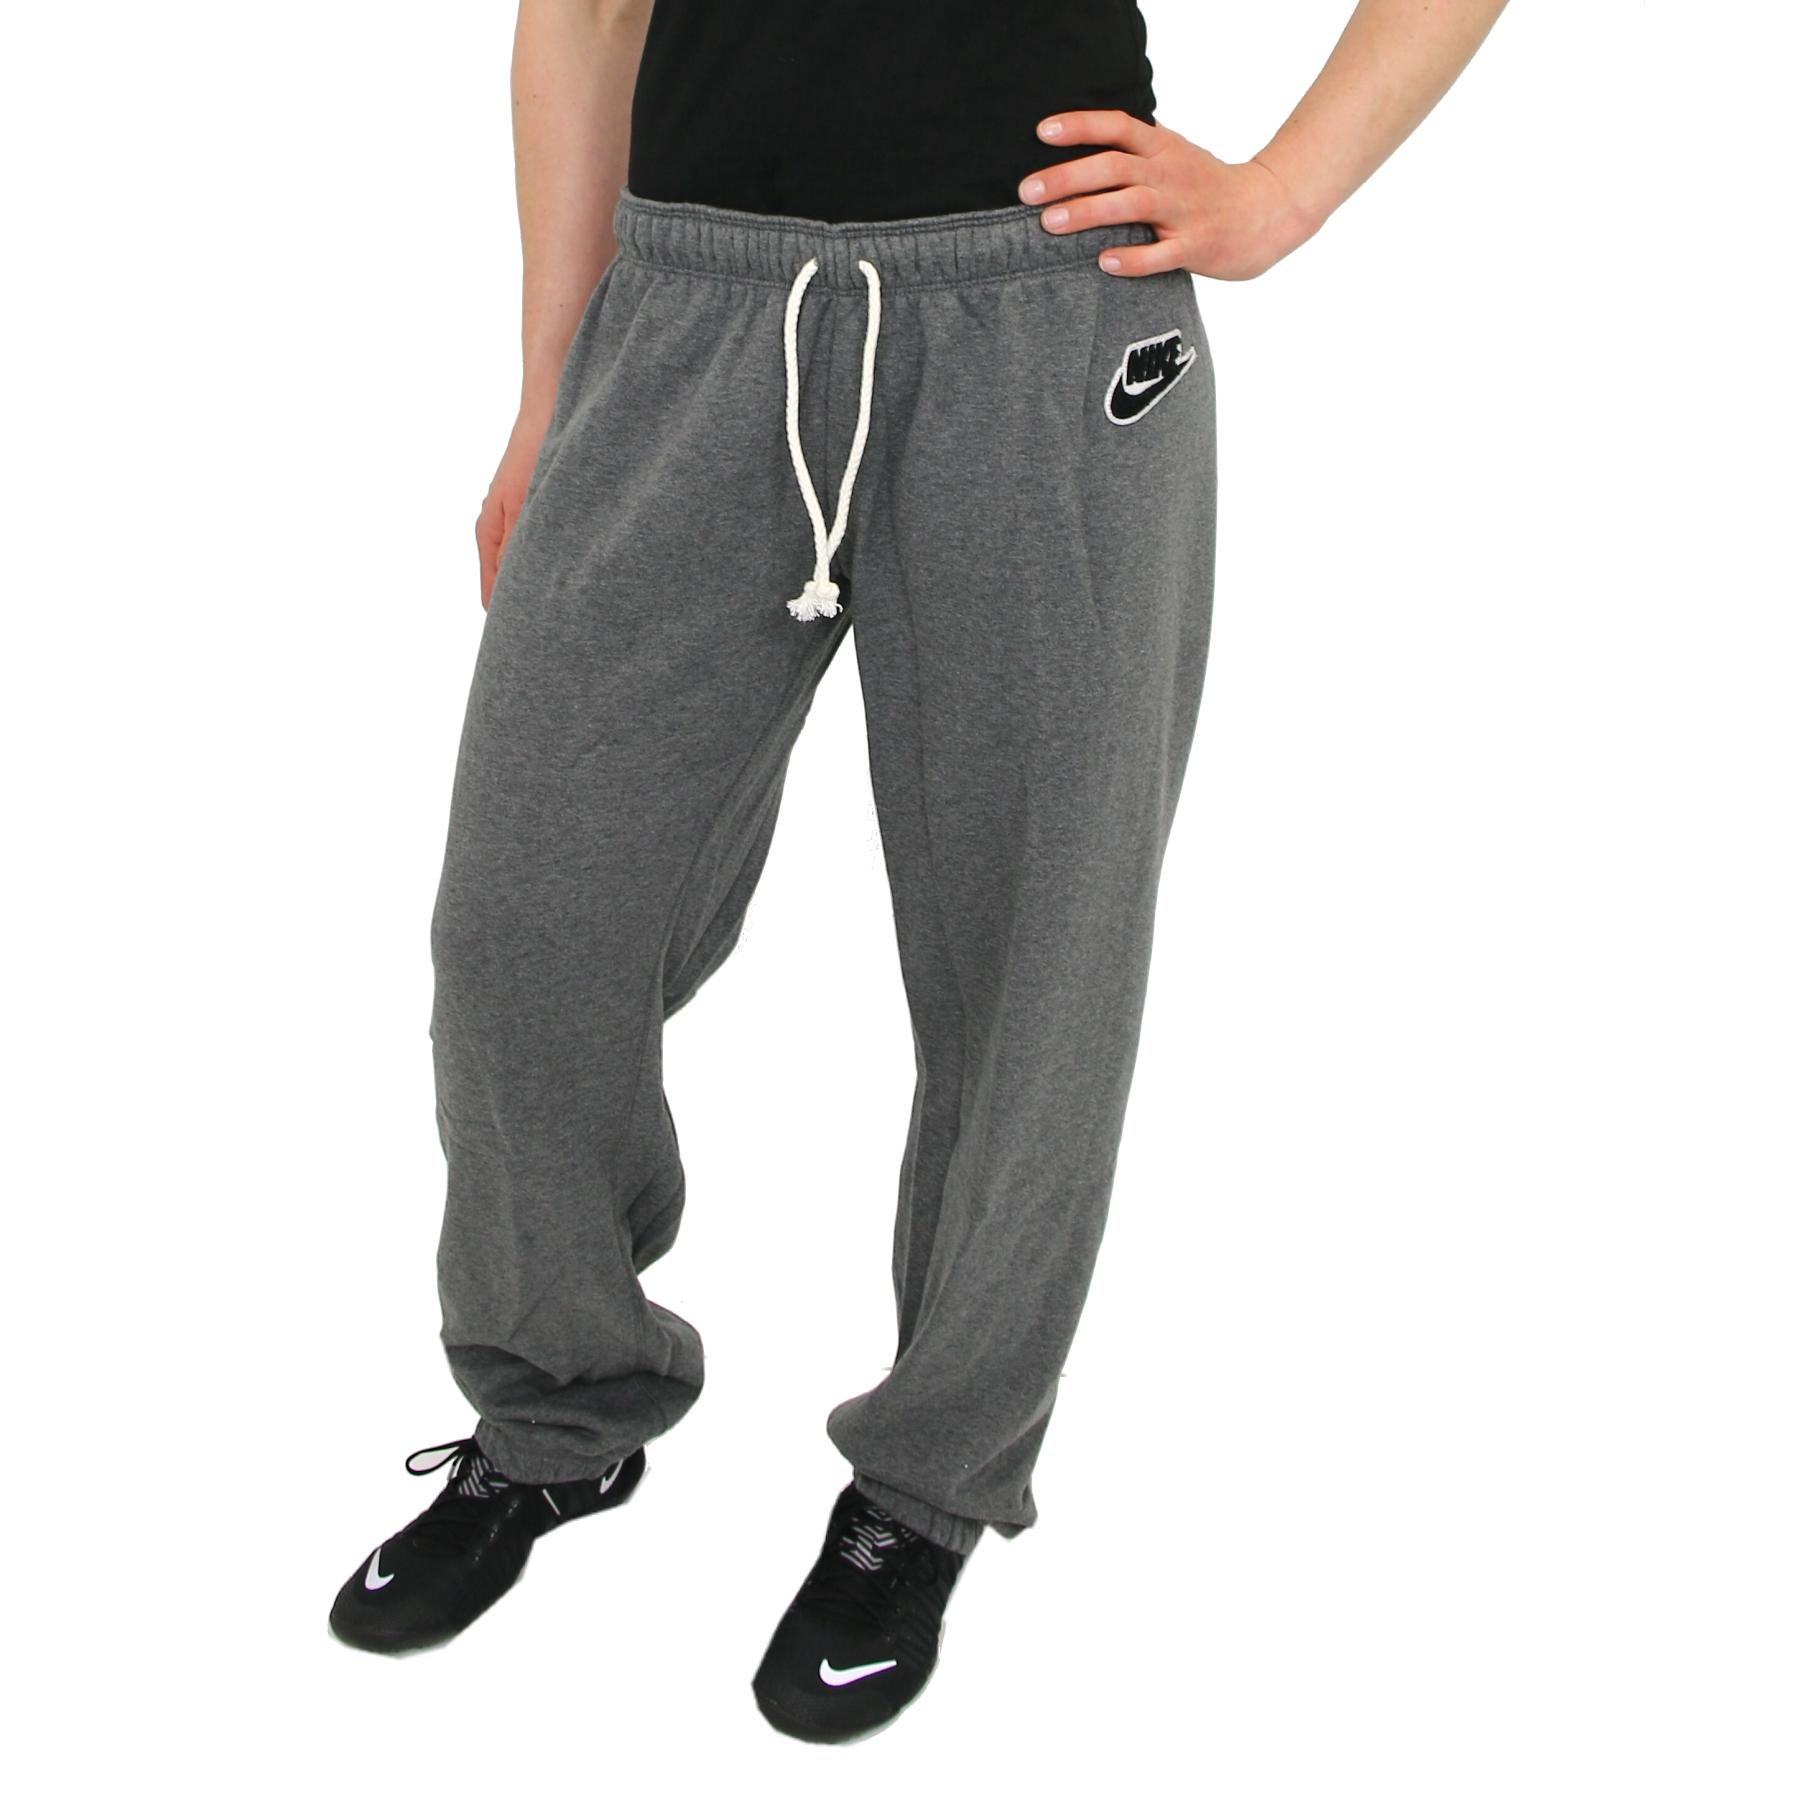 nike rally pant reg hose sporthose trainingshose. Black Bedroom Furniture Sets. Home Design Ideas